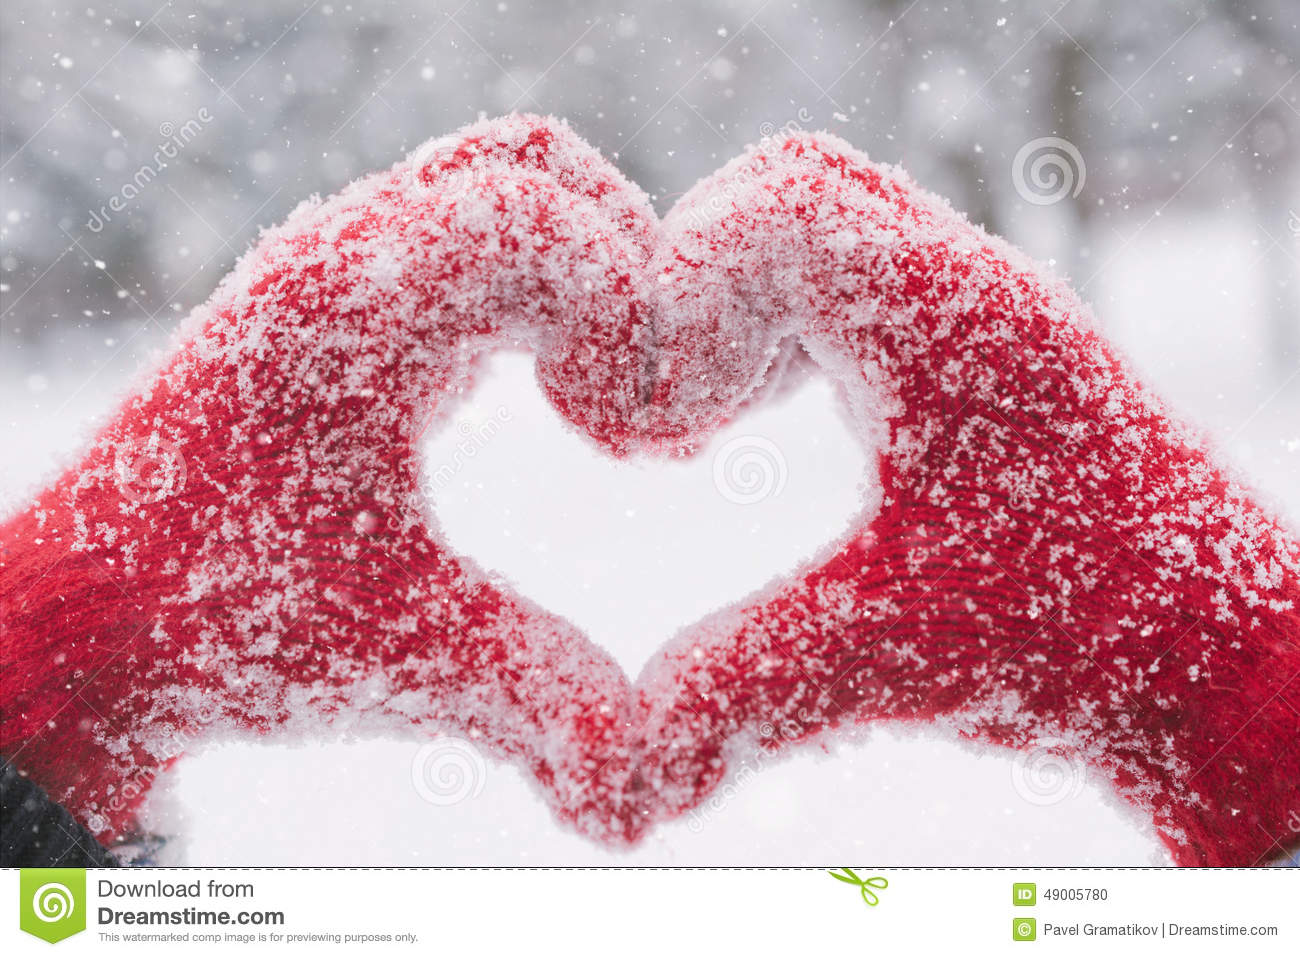 Falling Snow Wallpaper Note 3 Woman Making Heart Symbol With Snowy Hands Stock Photo